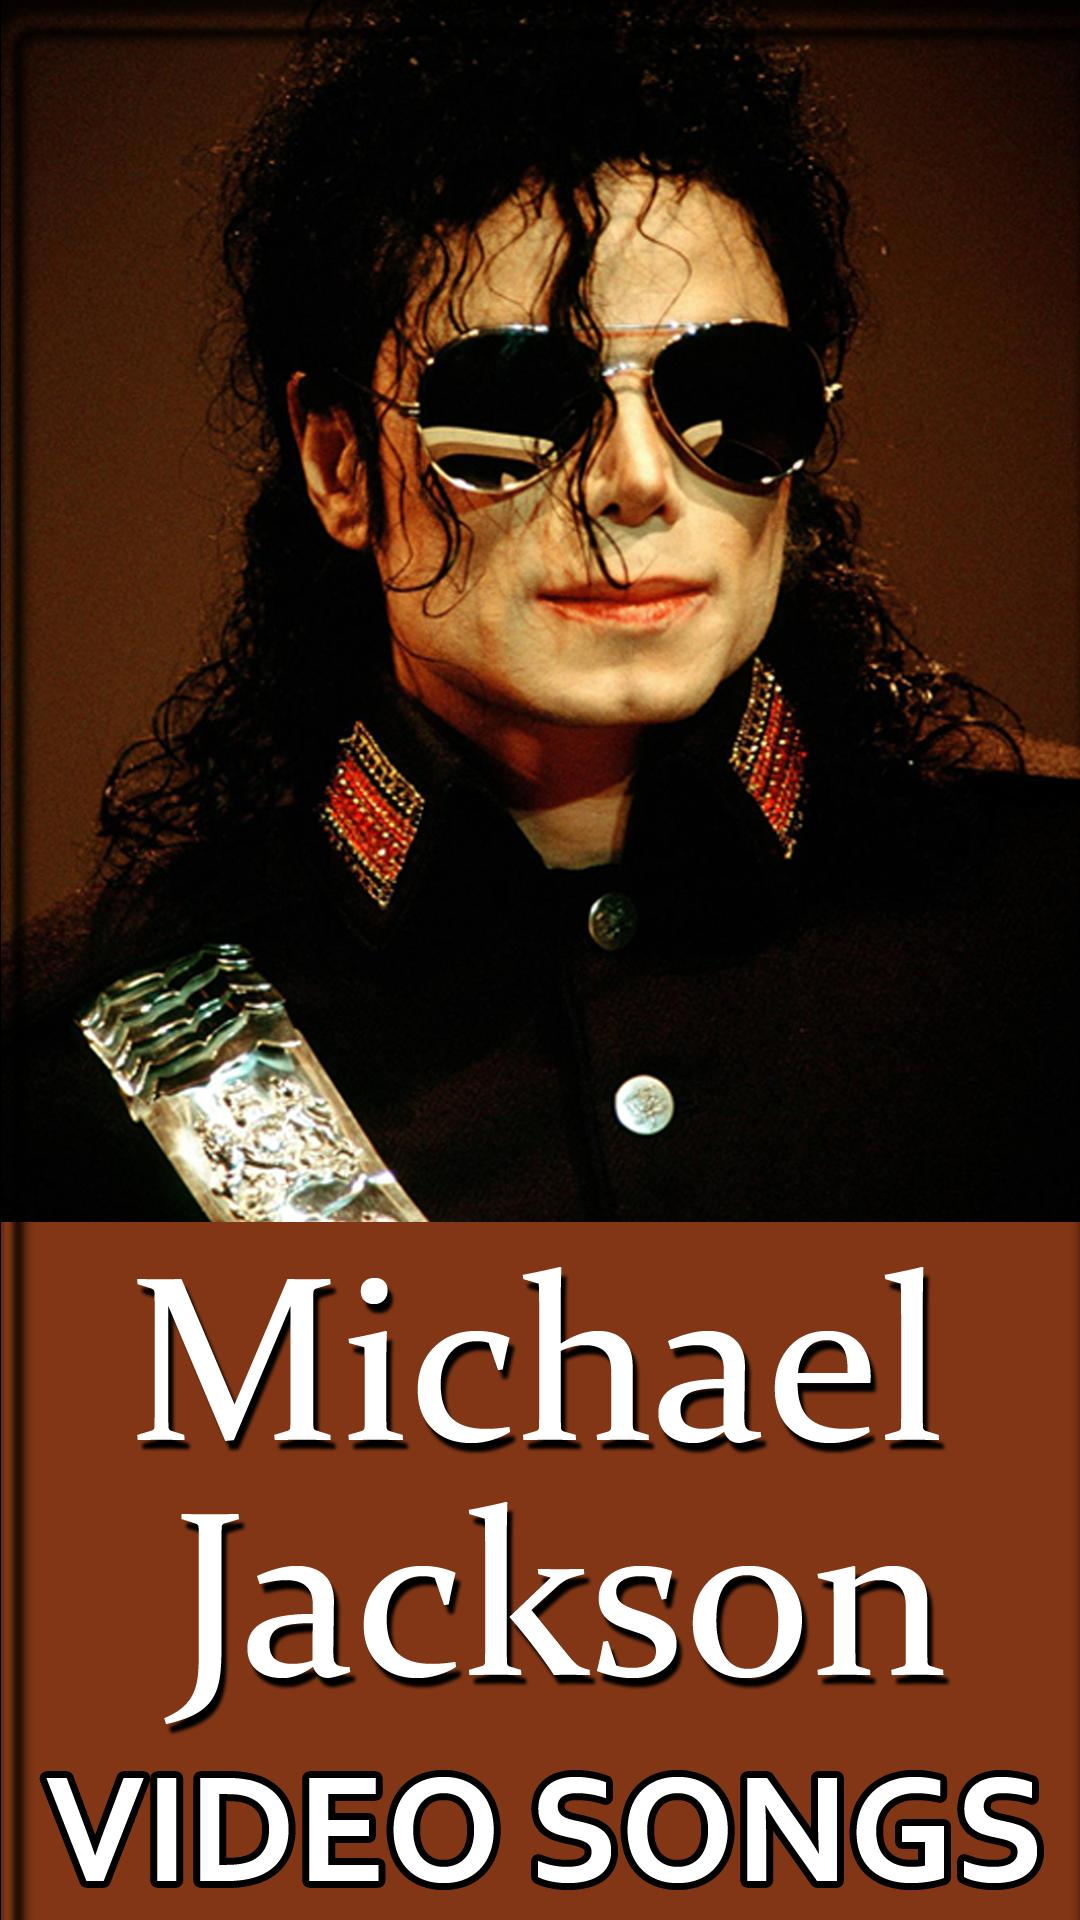 Michael Jackson Songs App - MJ Video Songs for Android - APK